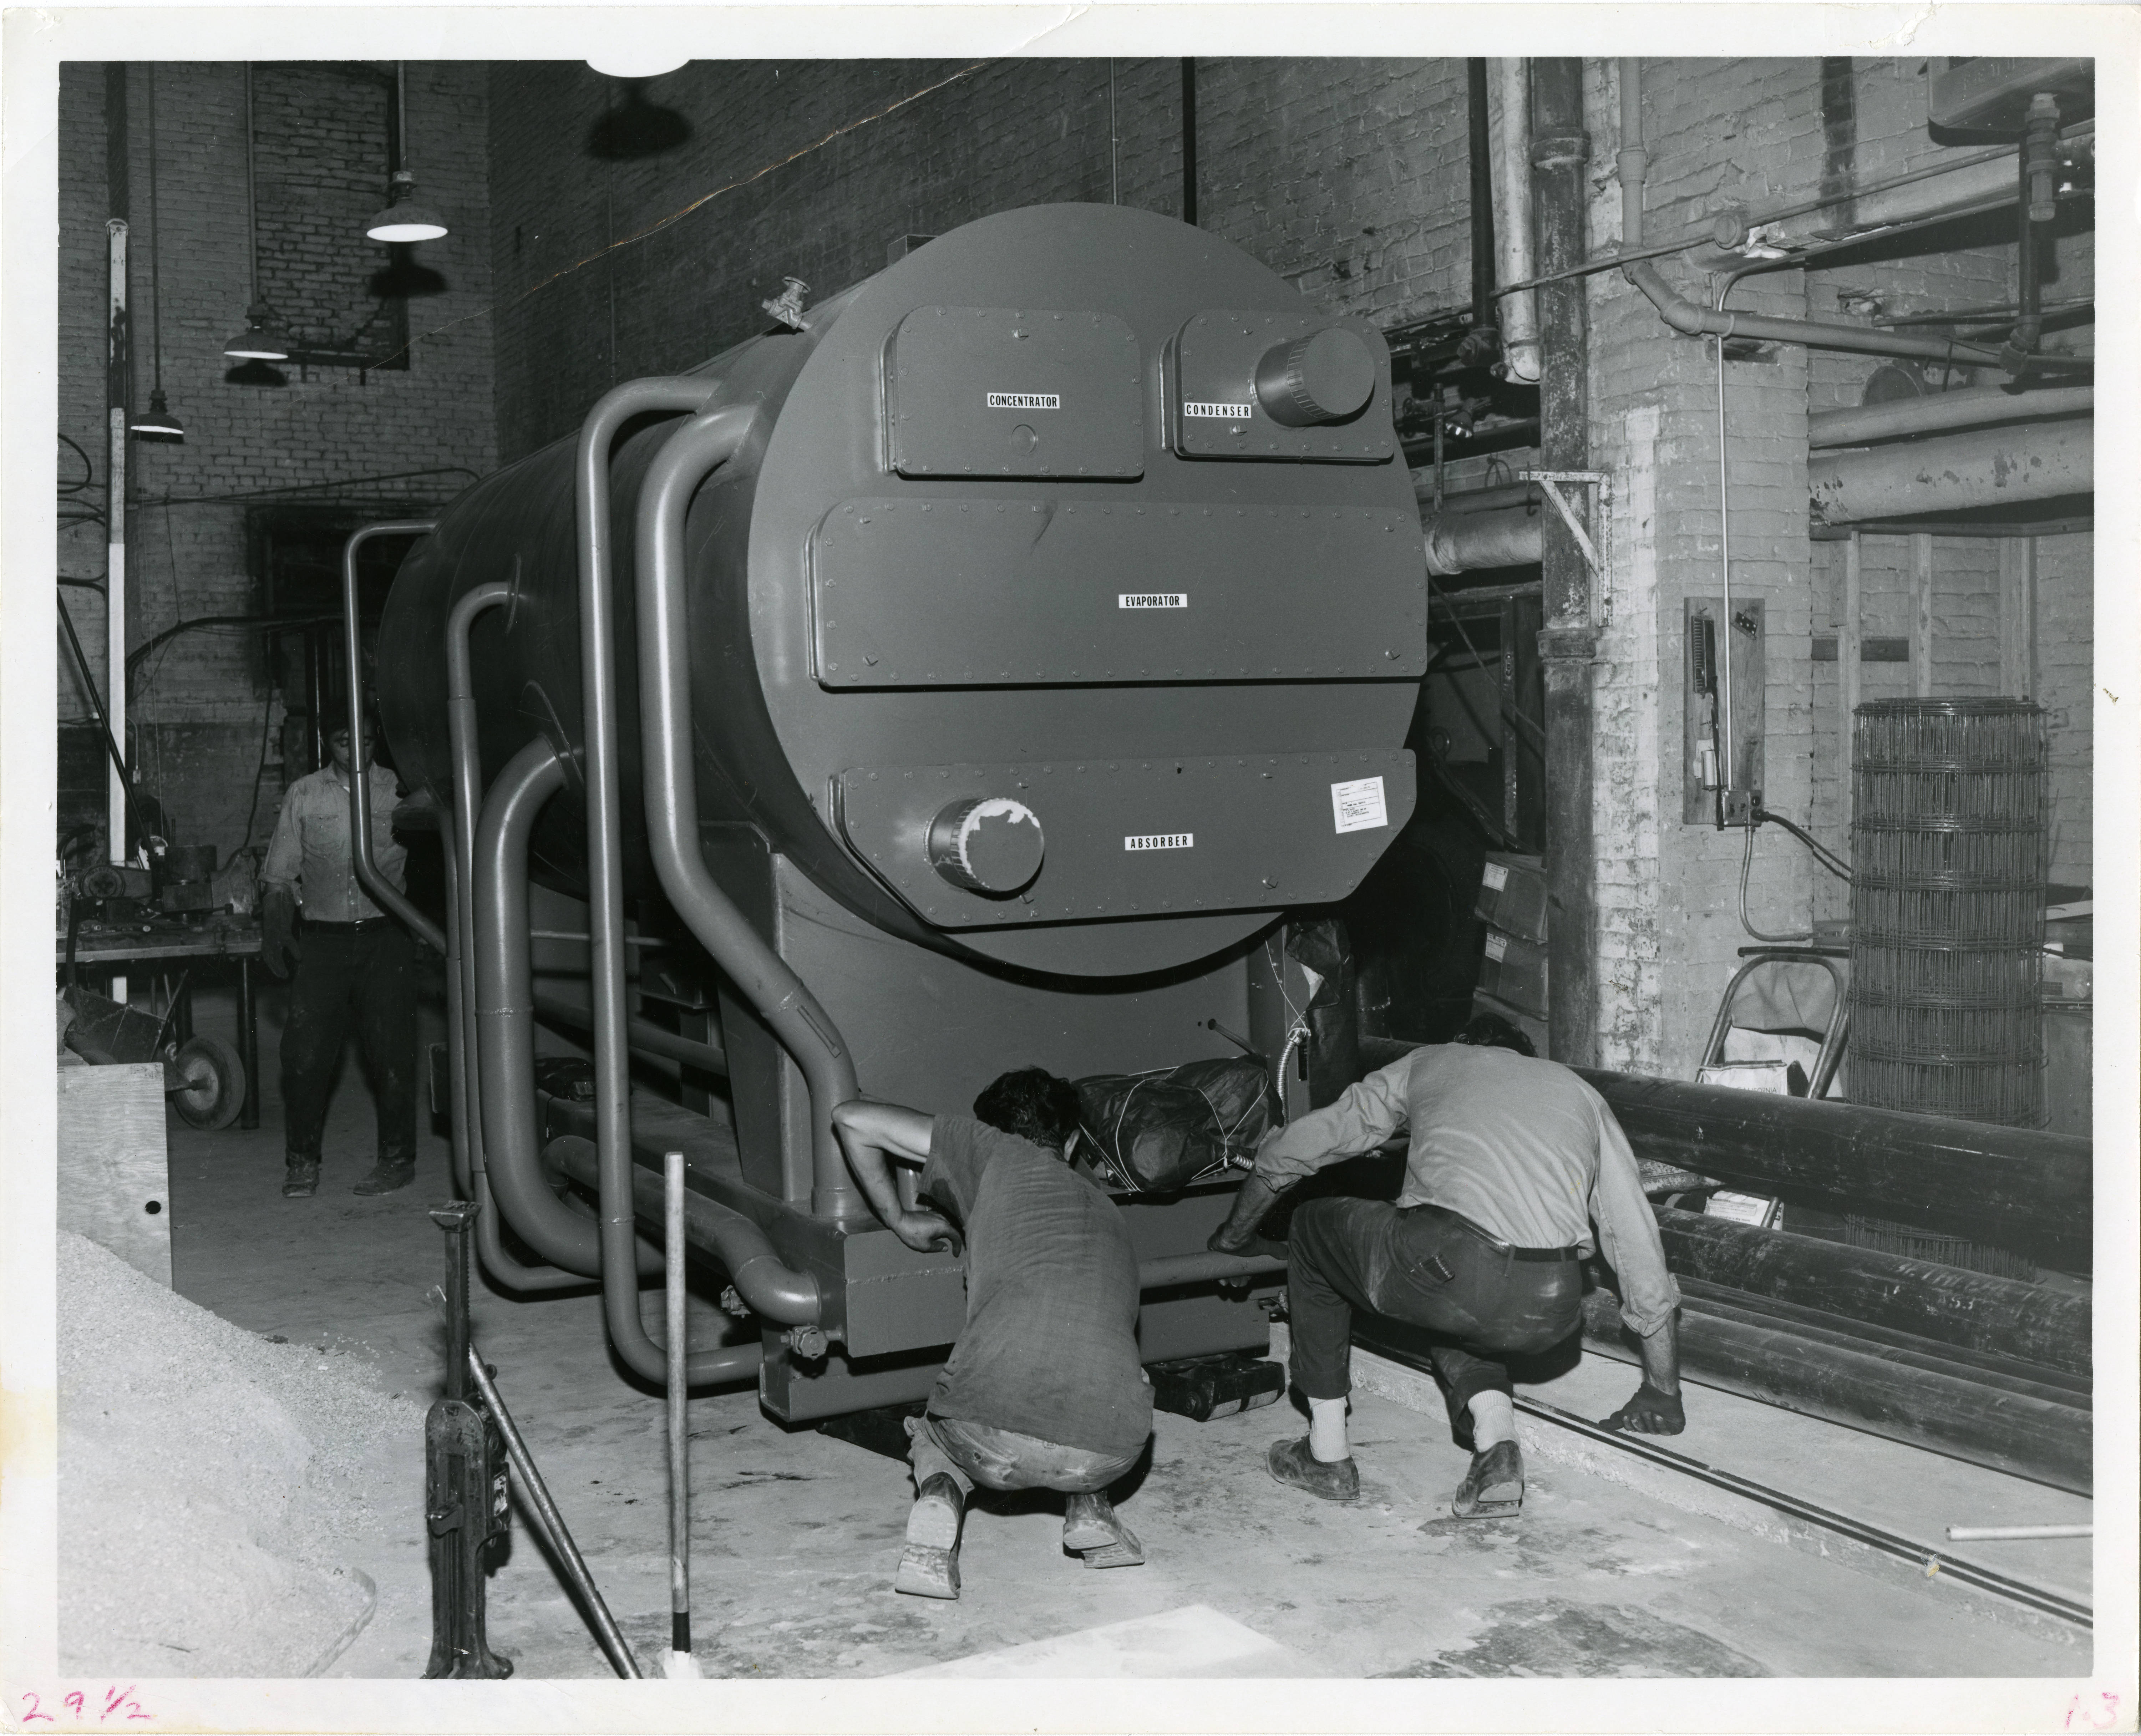 Sound insights about the birth of air conditioning - The